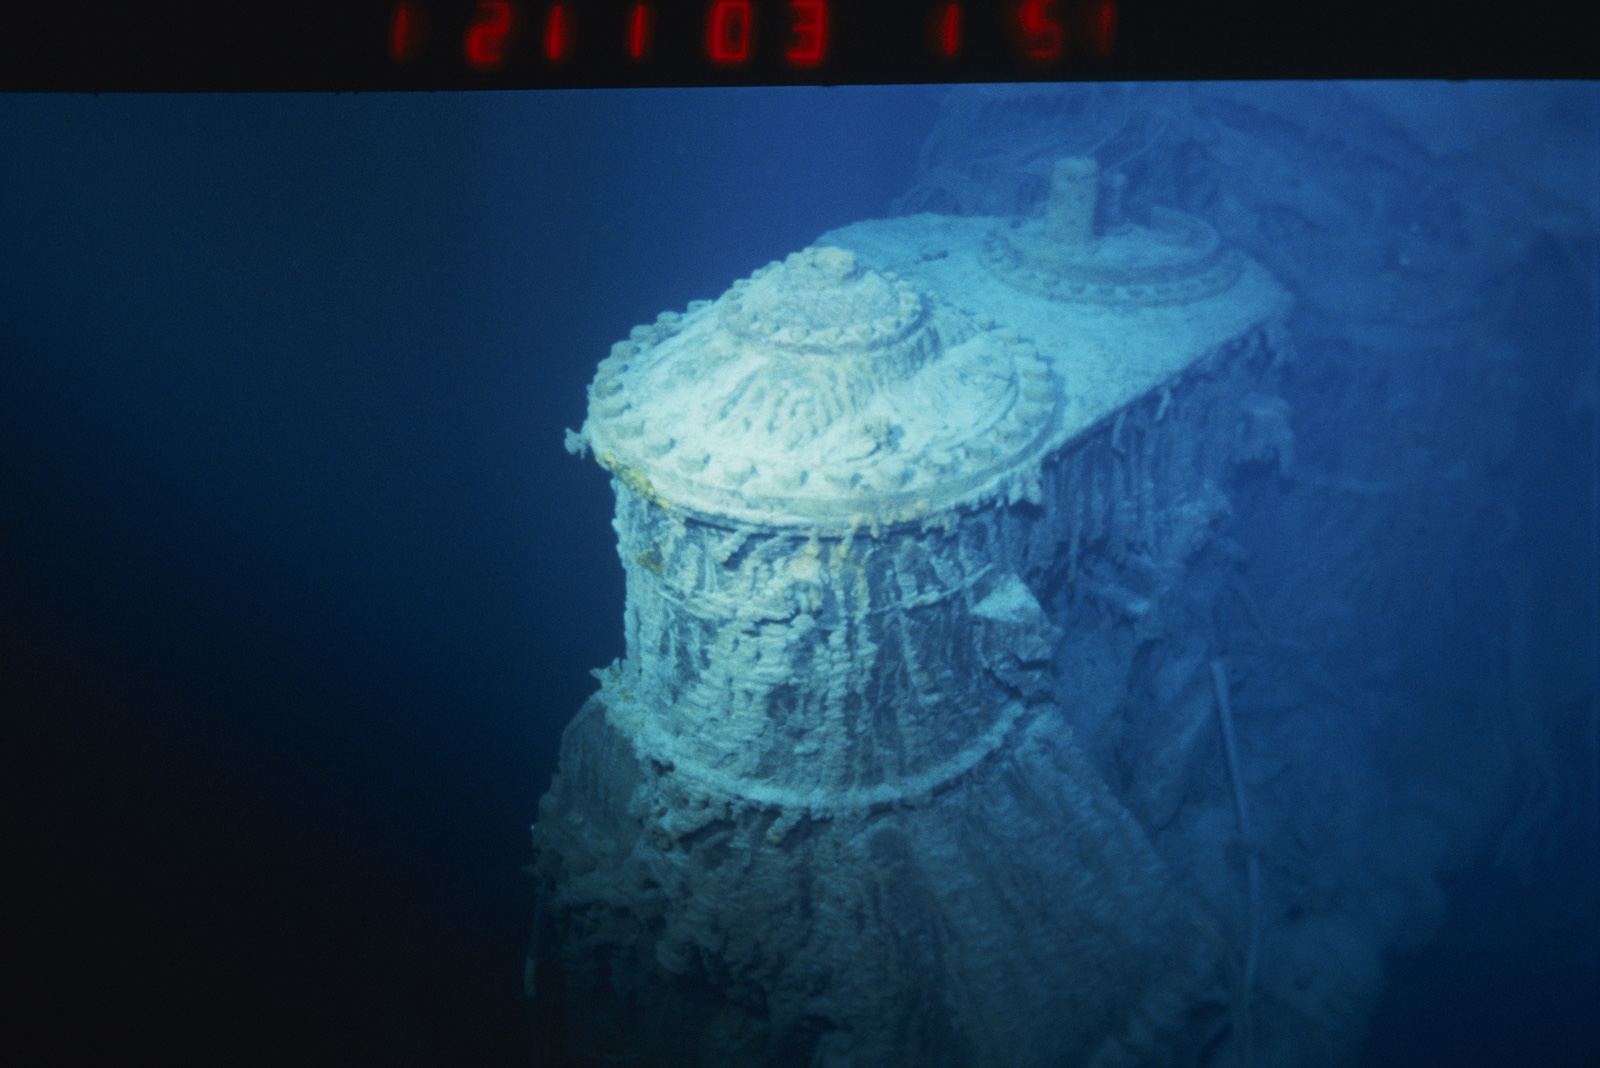 You could soon take a tour of the Titanic wreckage